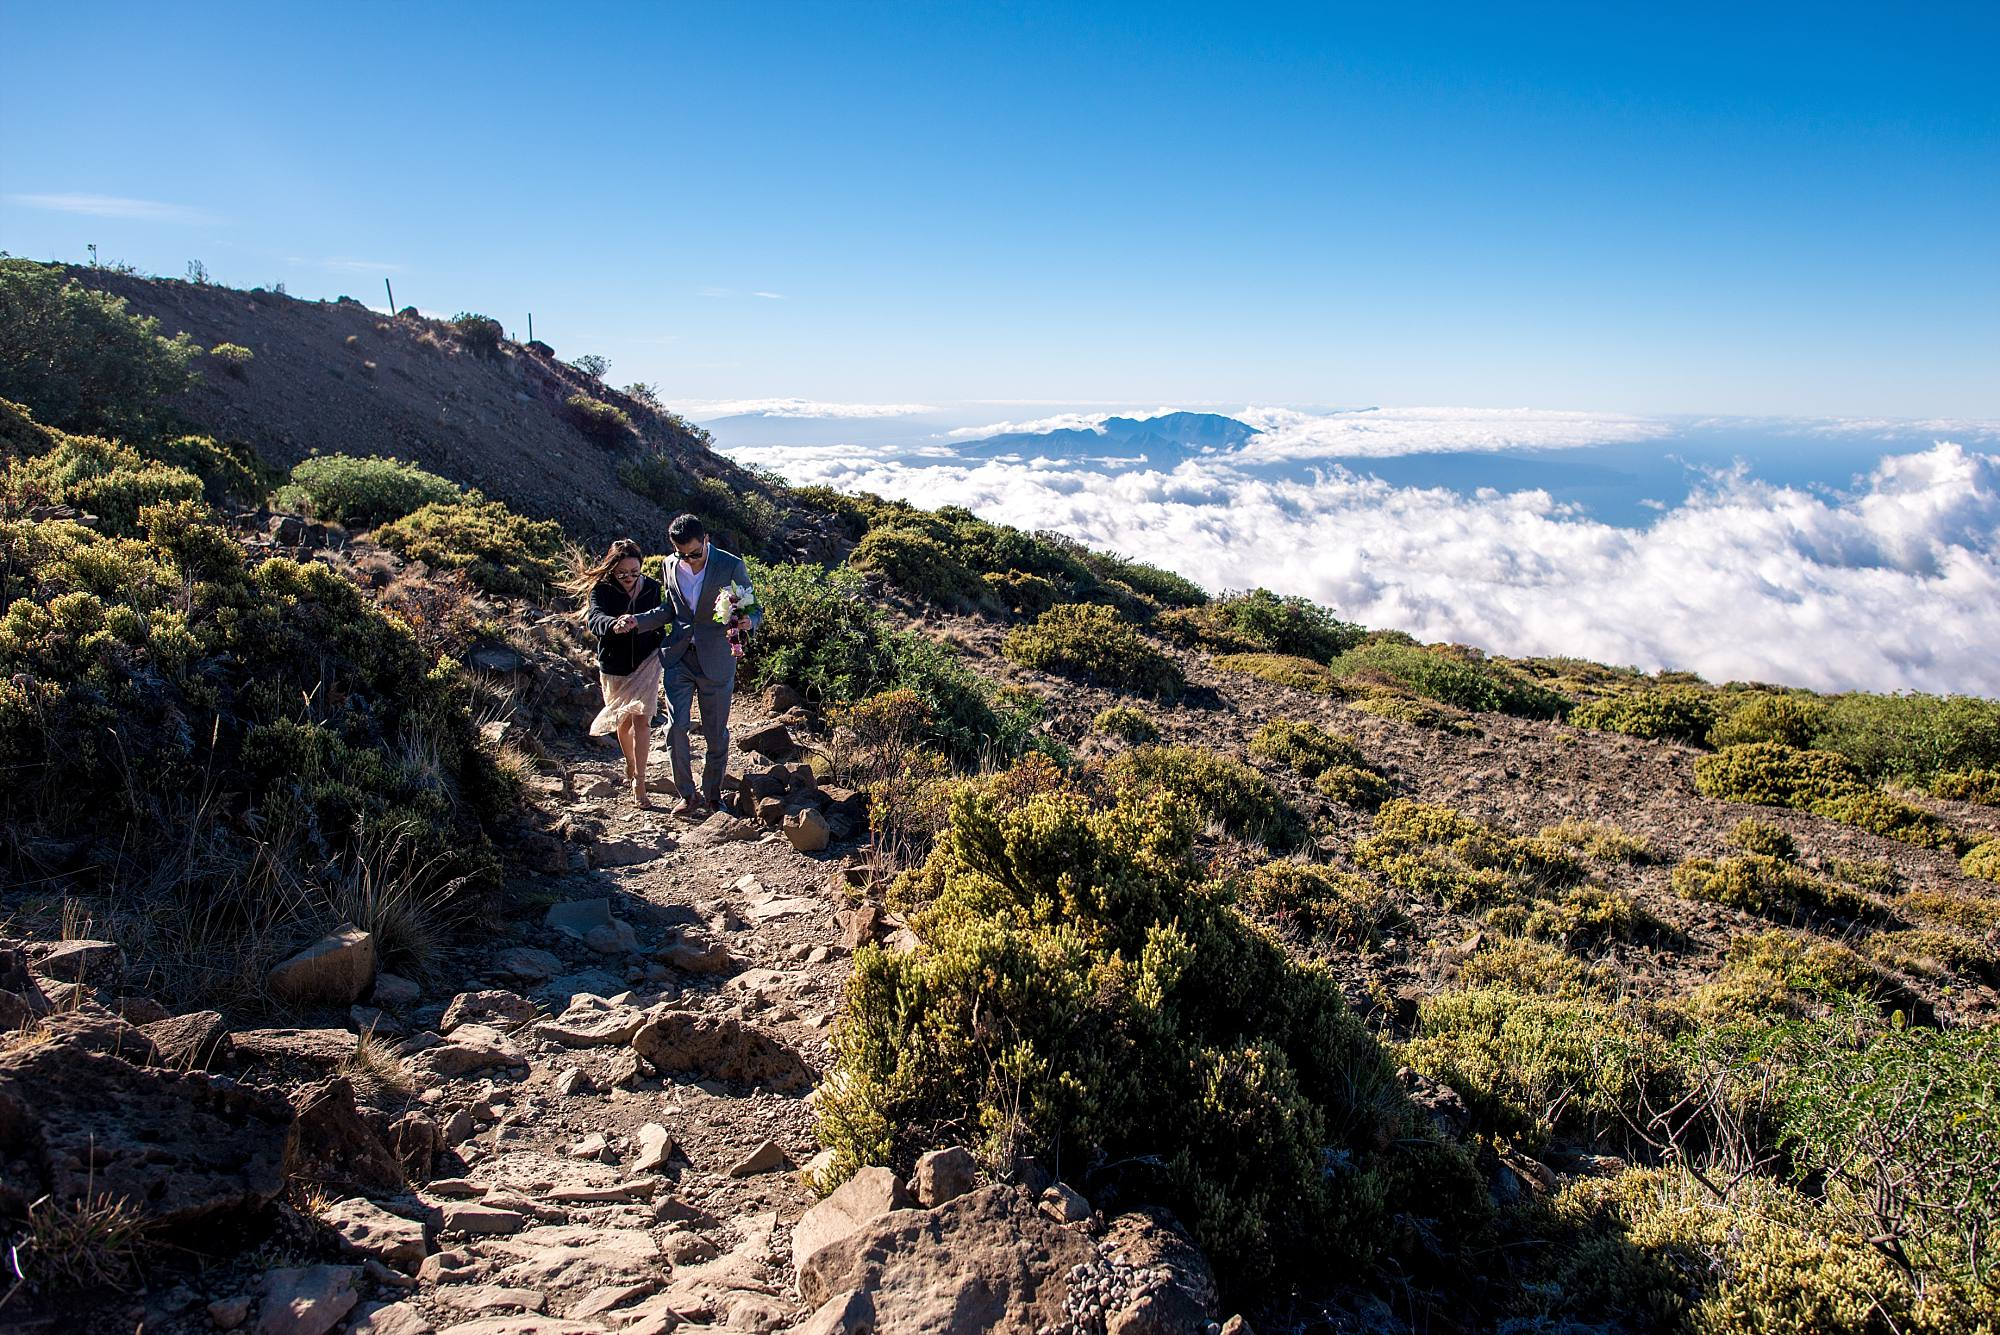 couple walking up rocky path on mountain